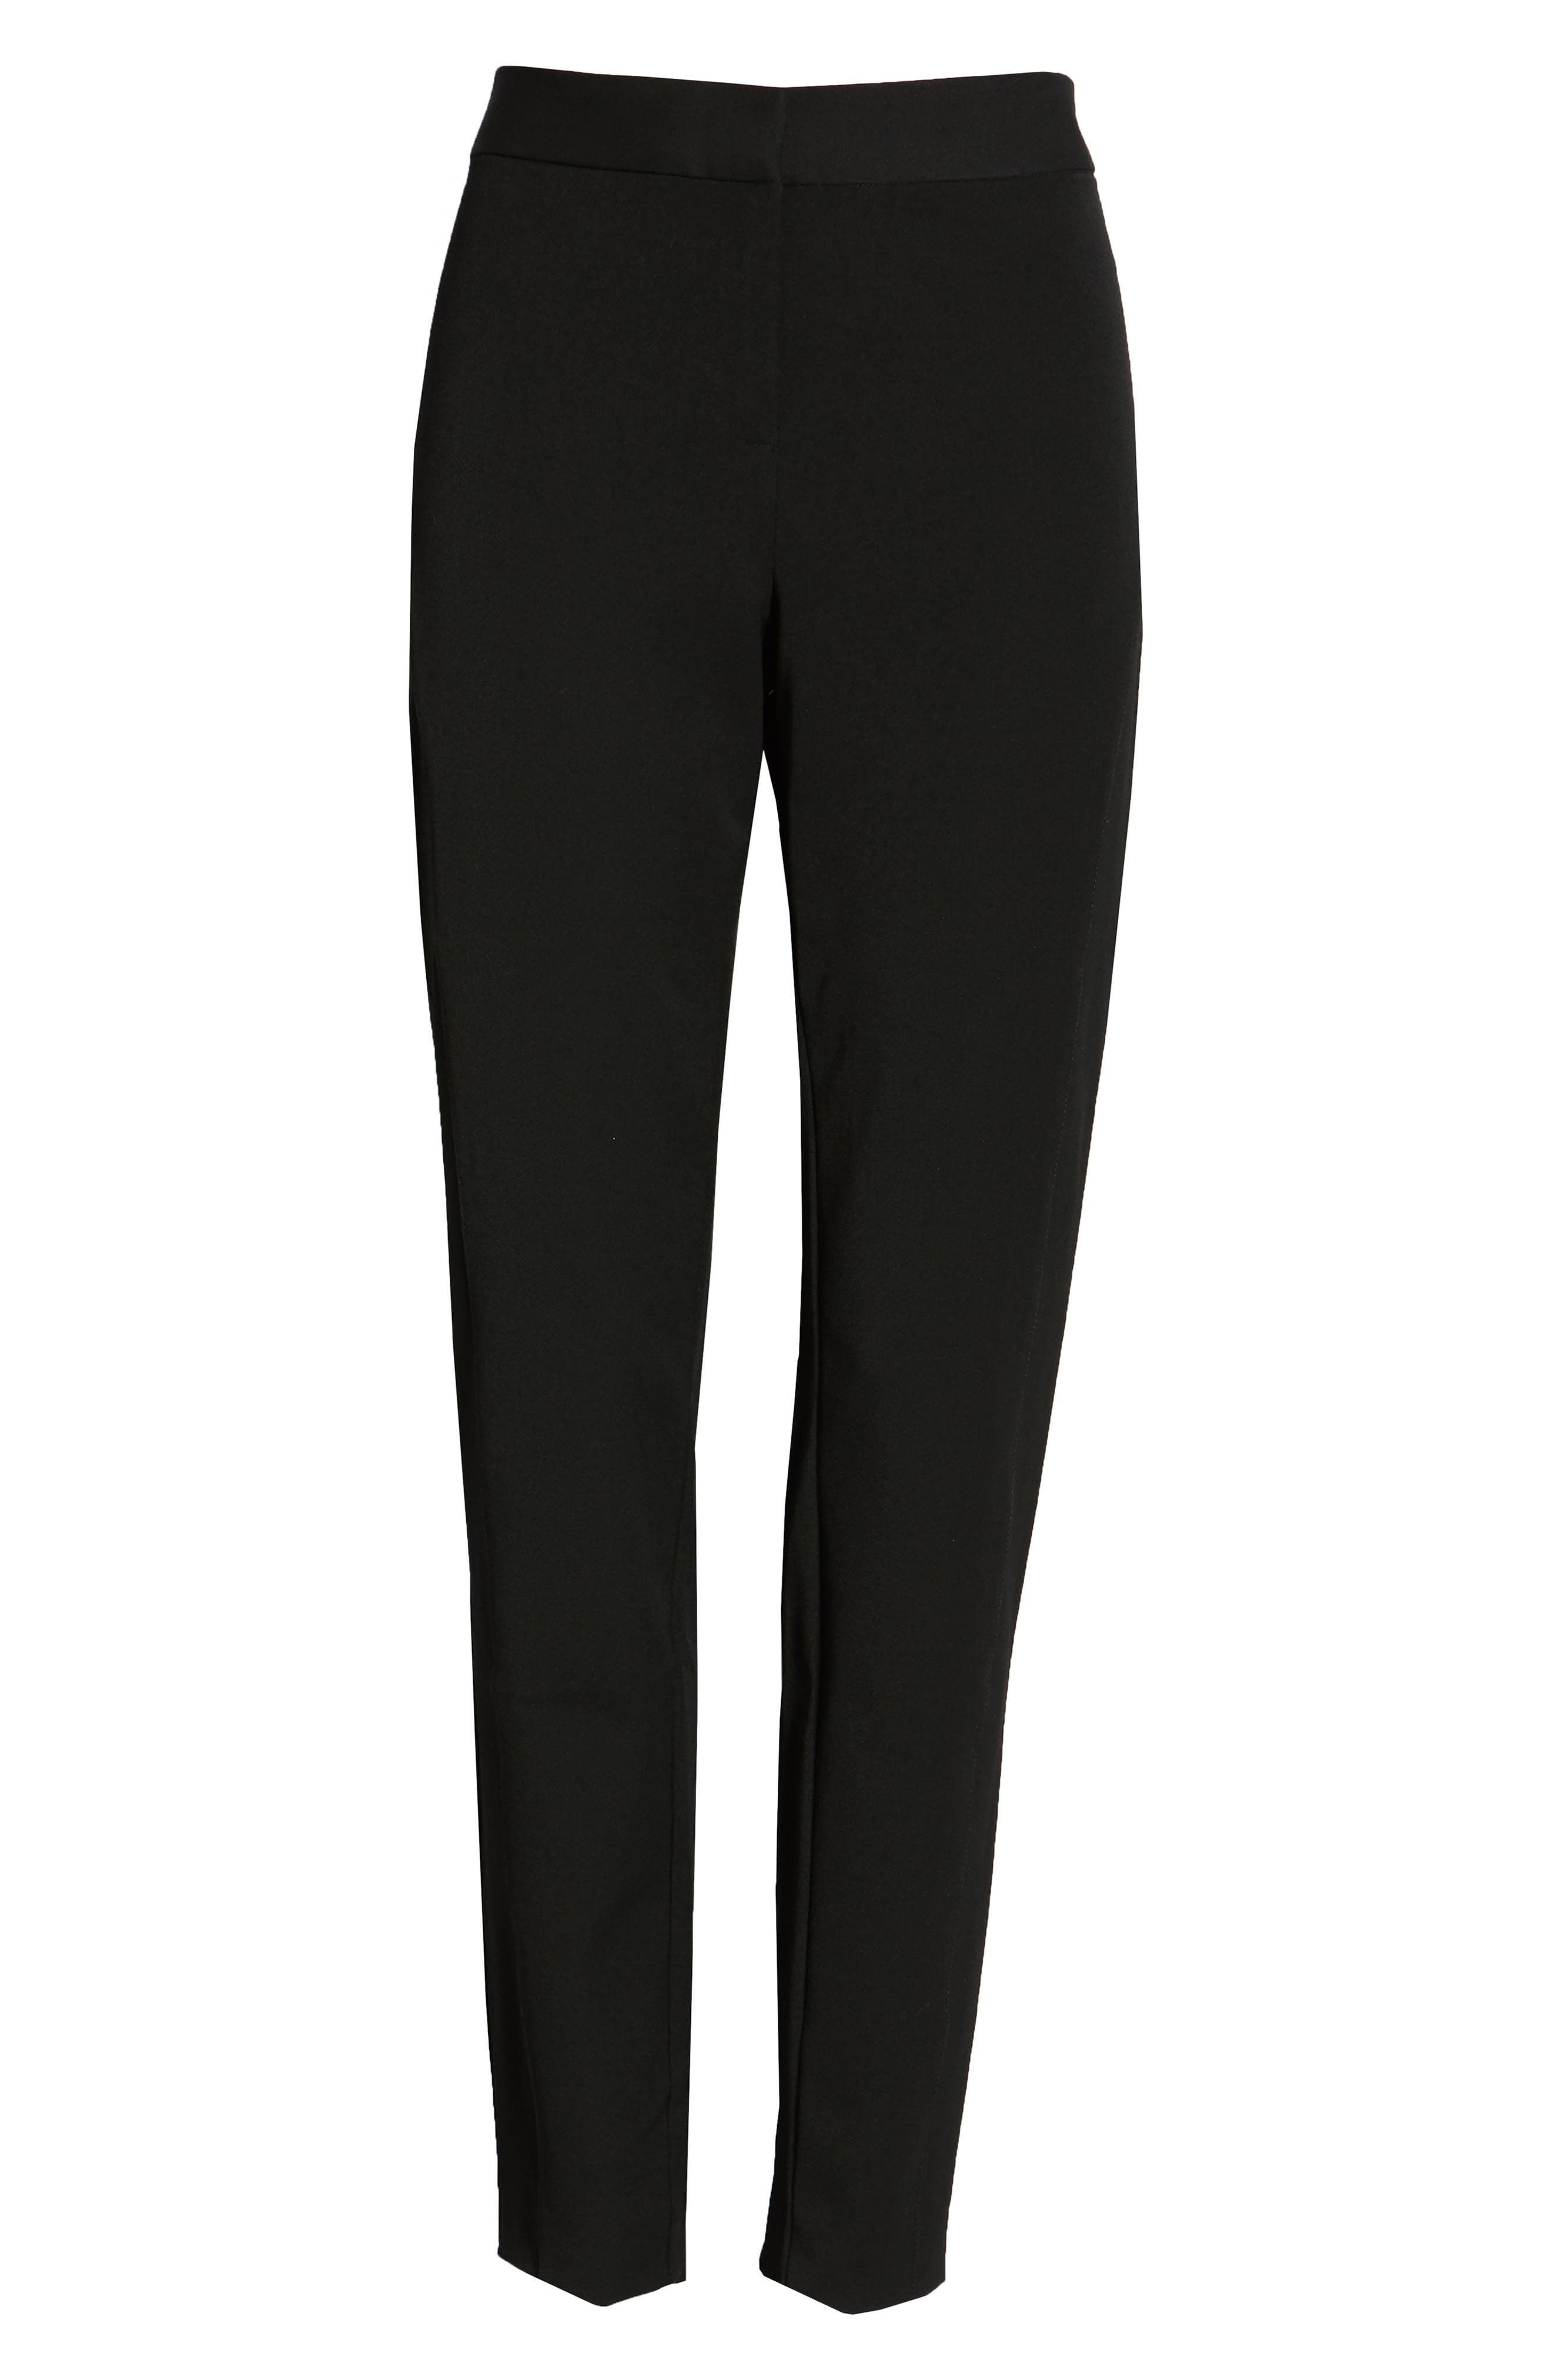 VINCE CAMUTO, Stretch Twill Skinny Pants, Alternate thumbnail 2, color, RICH BLACK